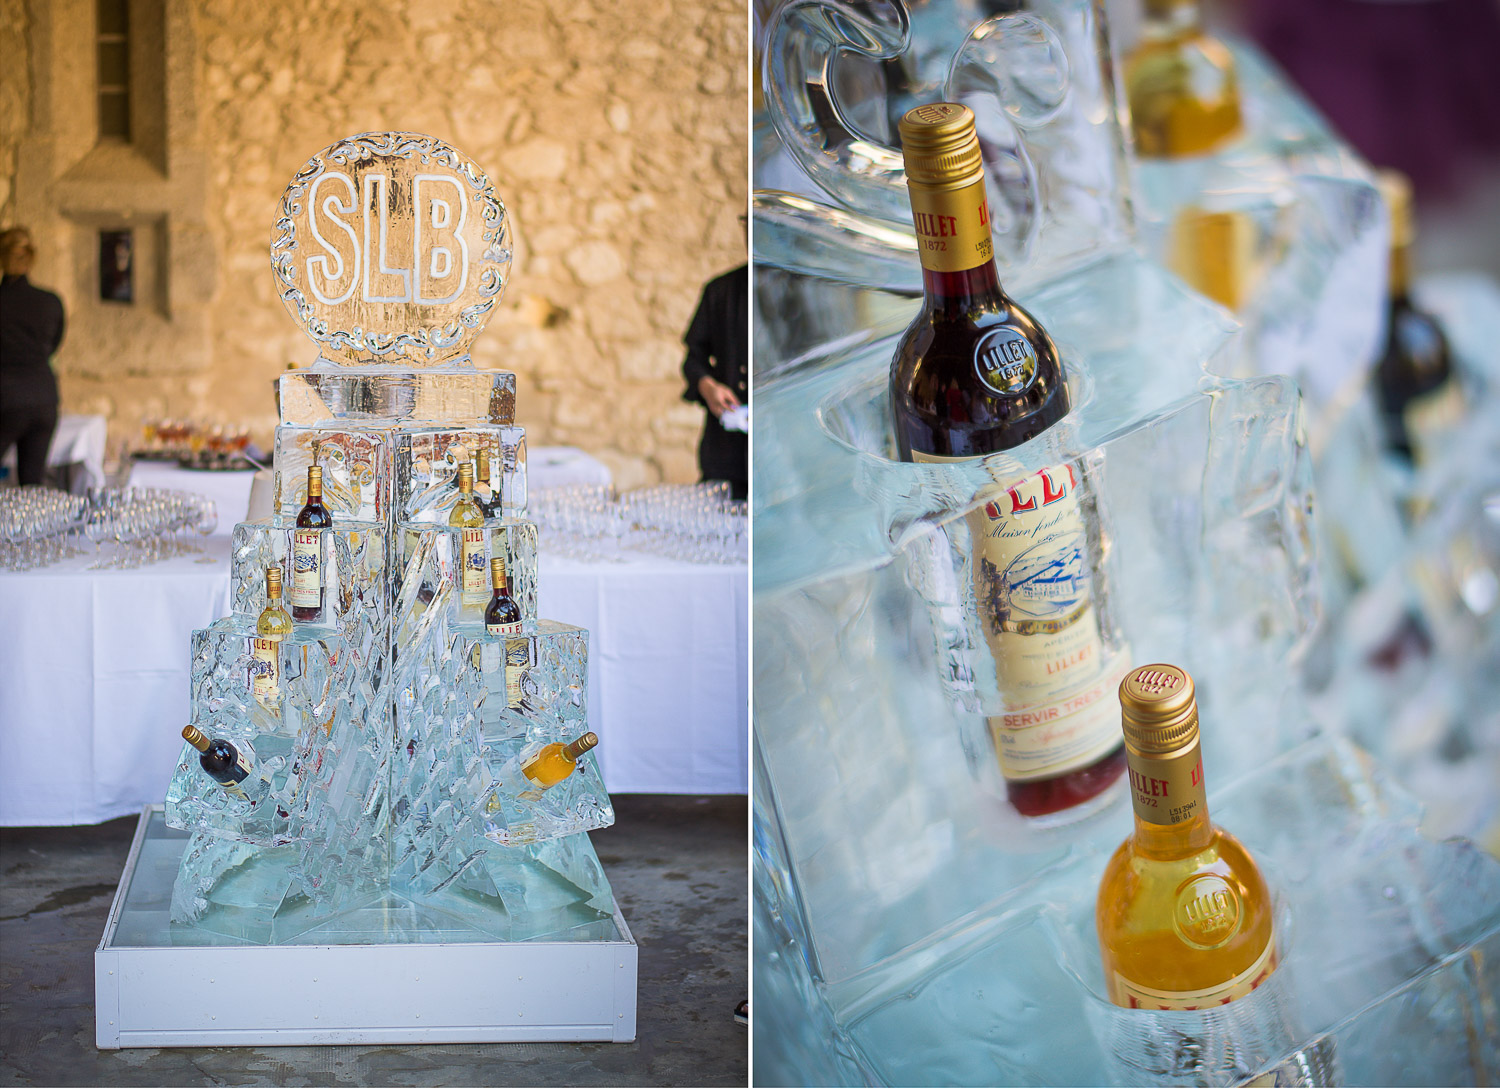 Lillet mariage